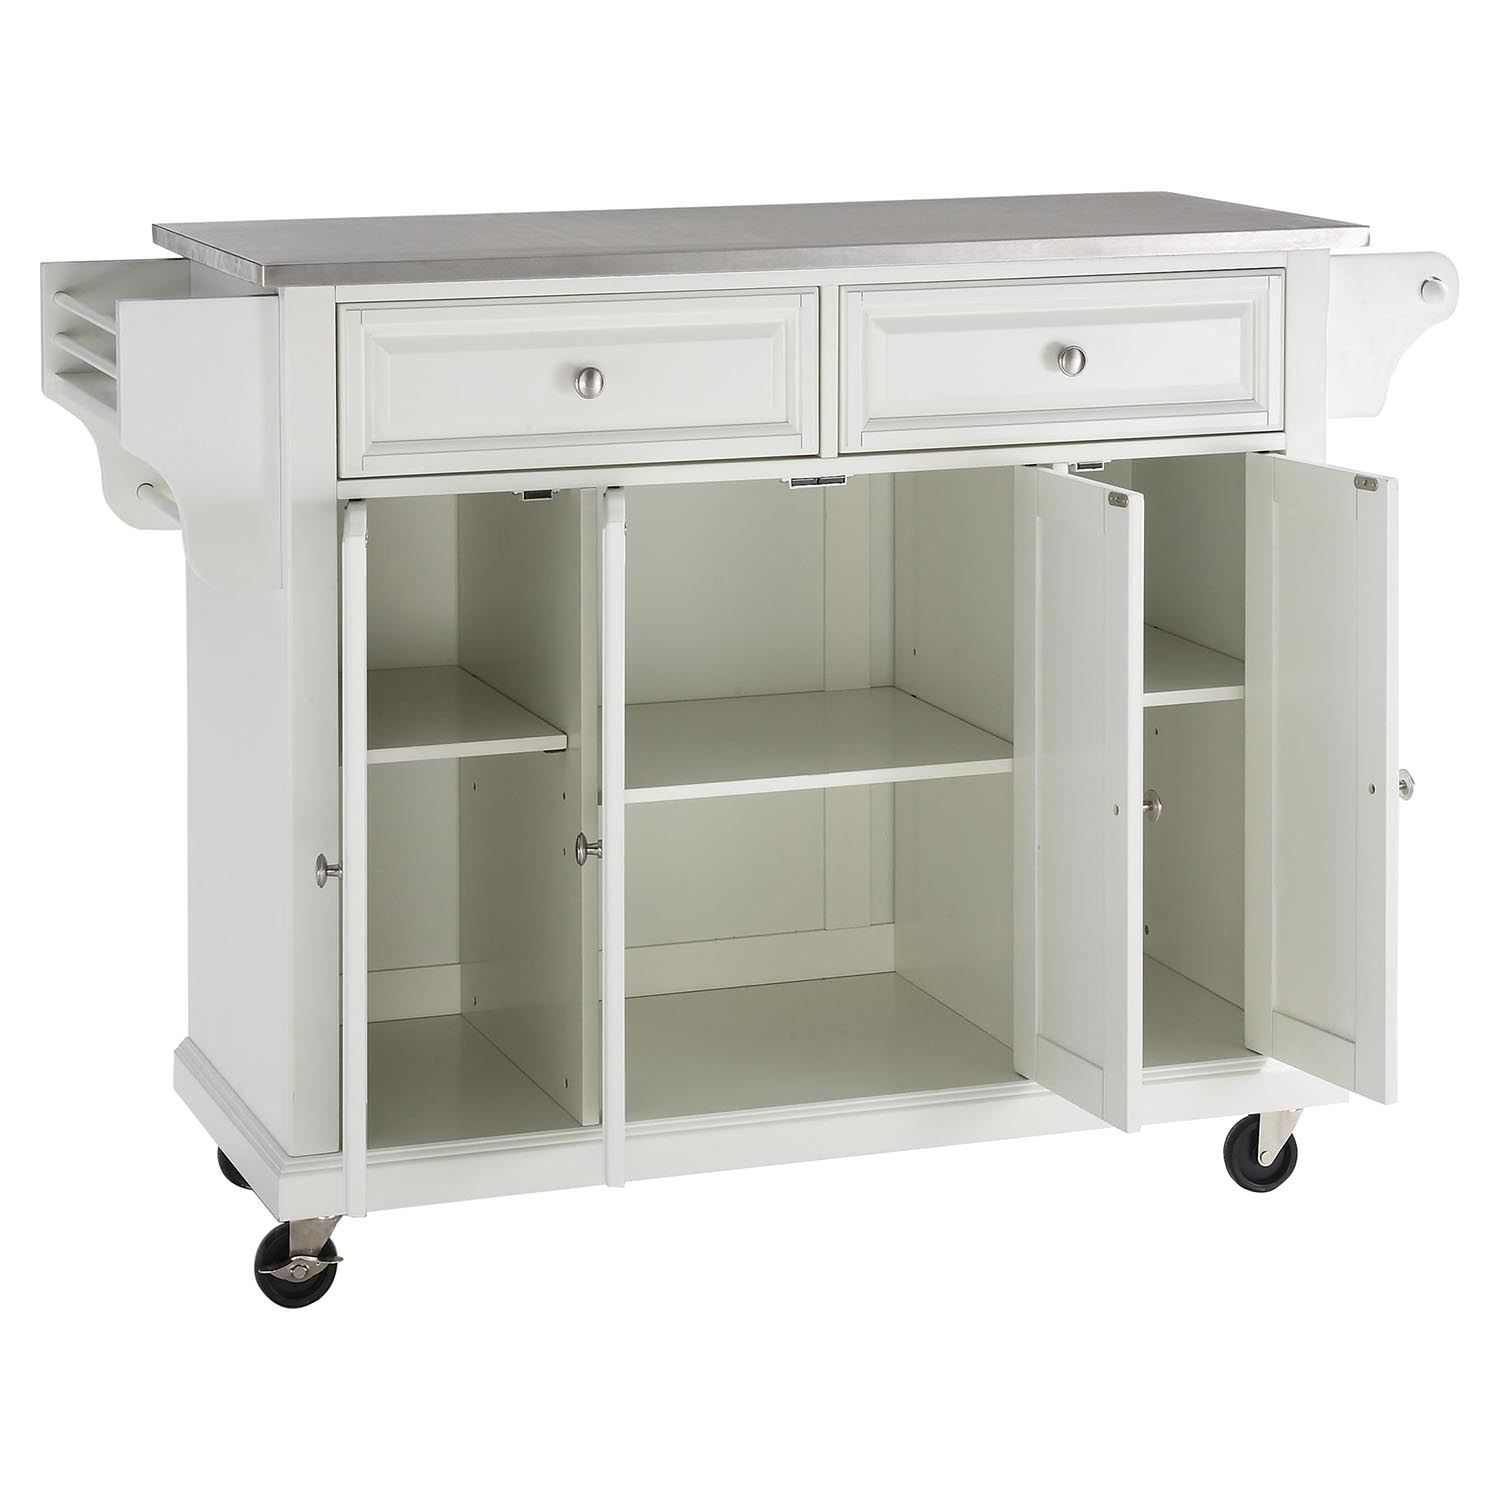 Stainless Steel Top Kitchen Cart Island Casters White